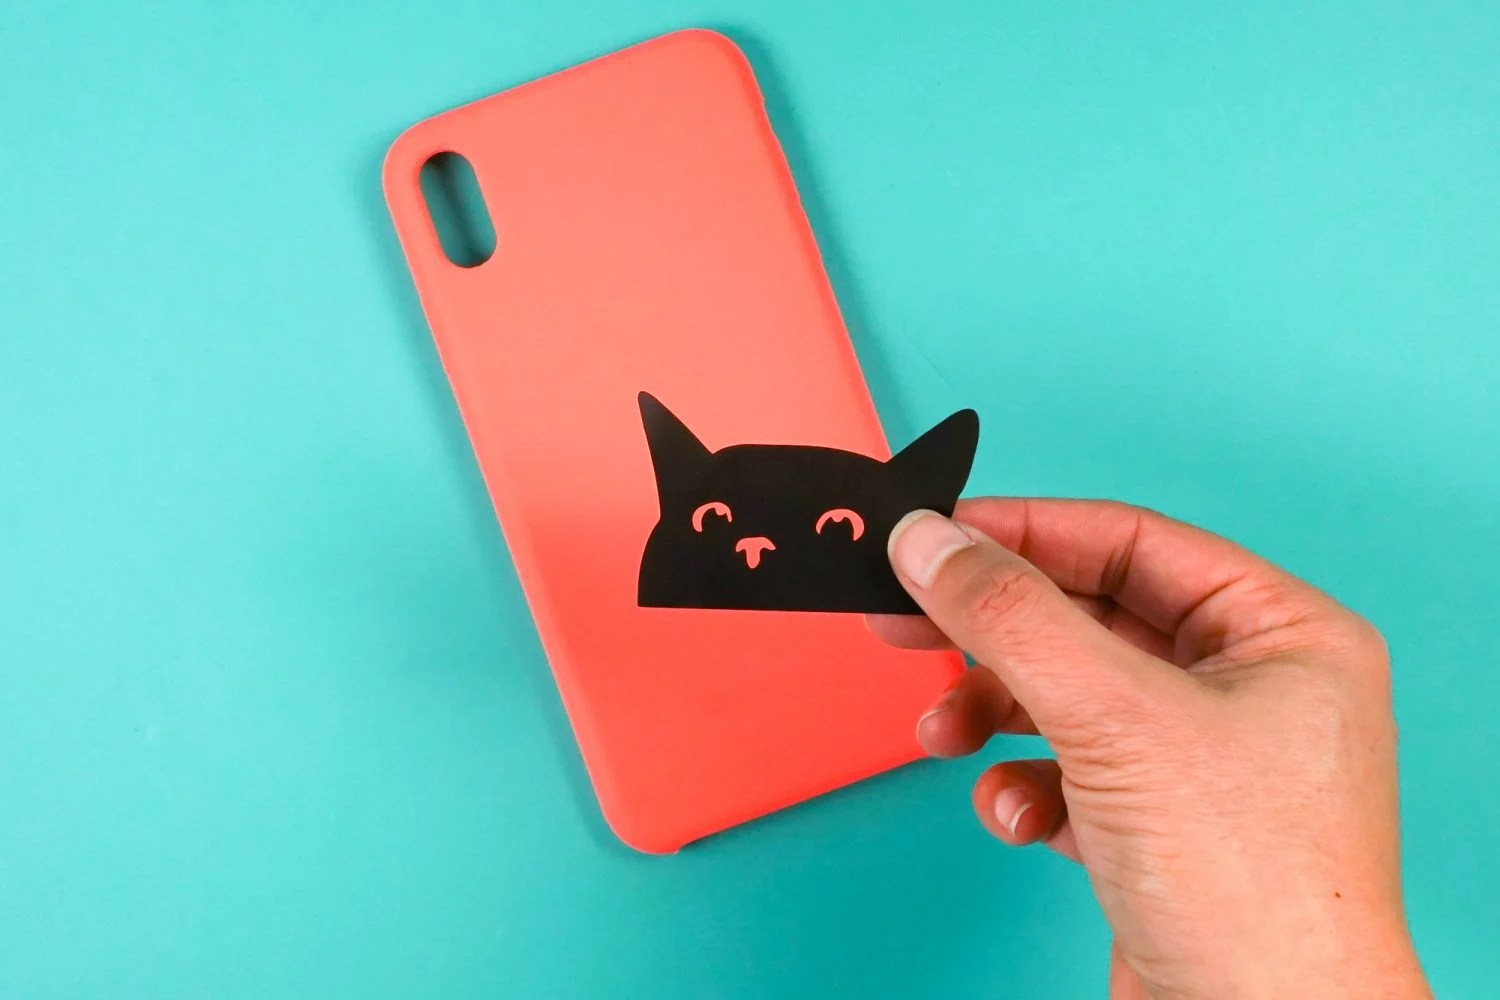 Placing the cat image on the phone by hand.